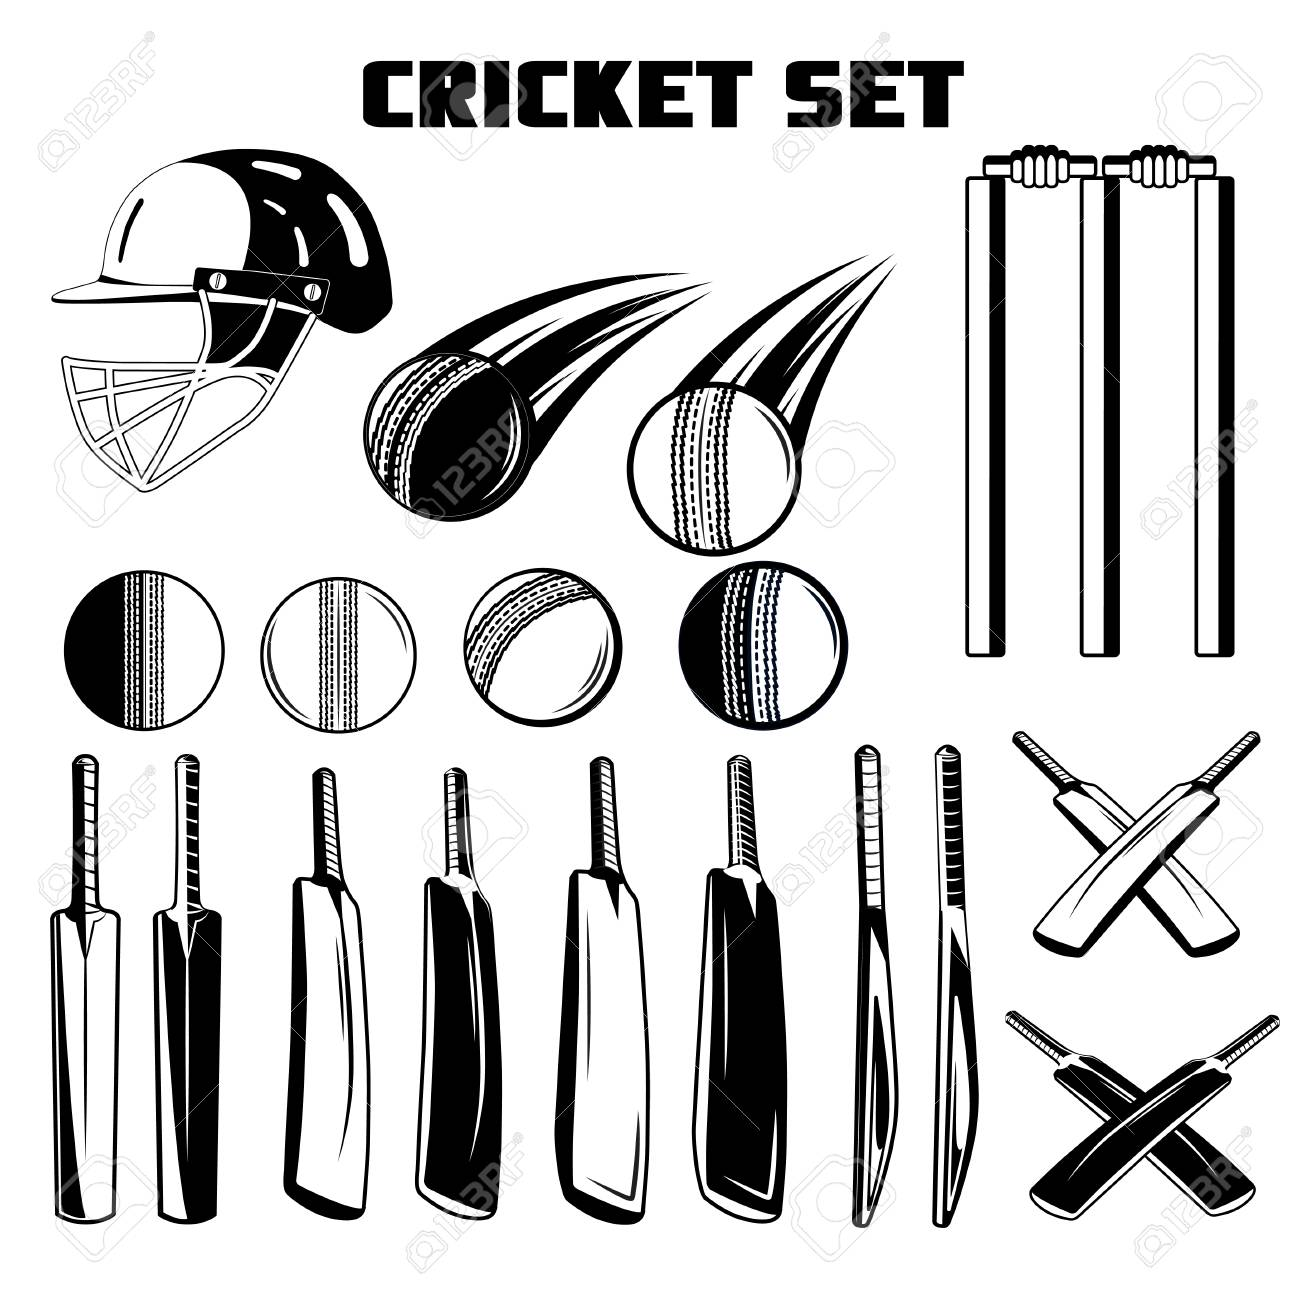 find all cricket accessories on sportreseller. | Clipart black and white,  Free clip art, Clip art